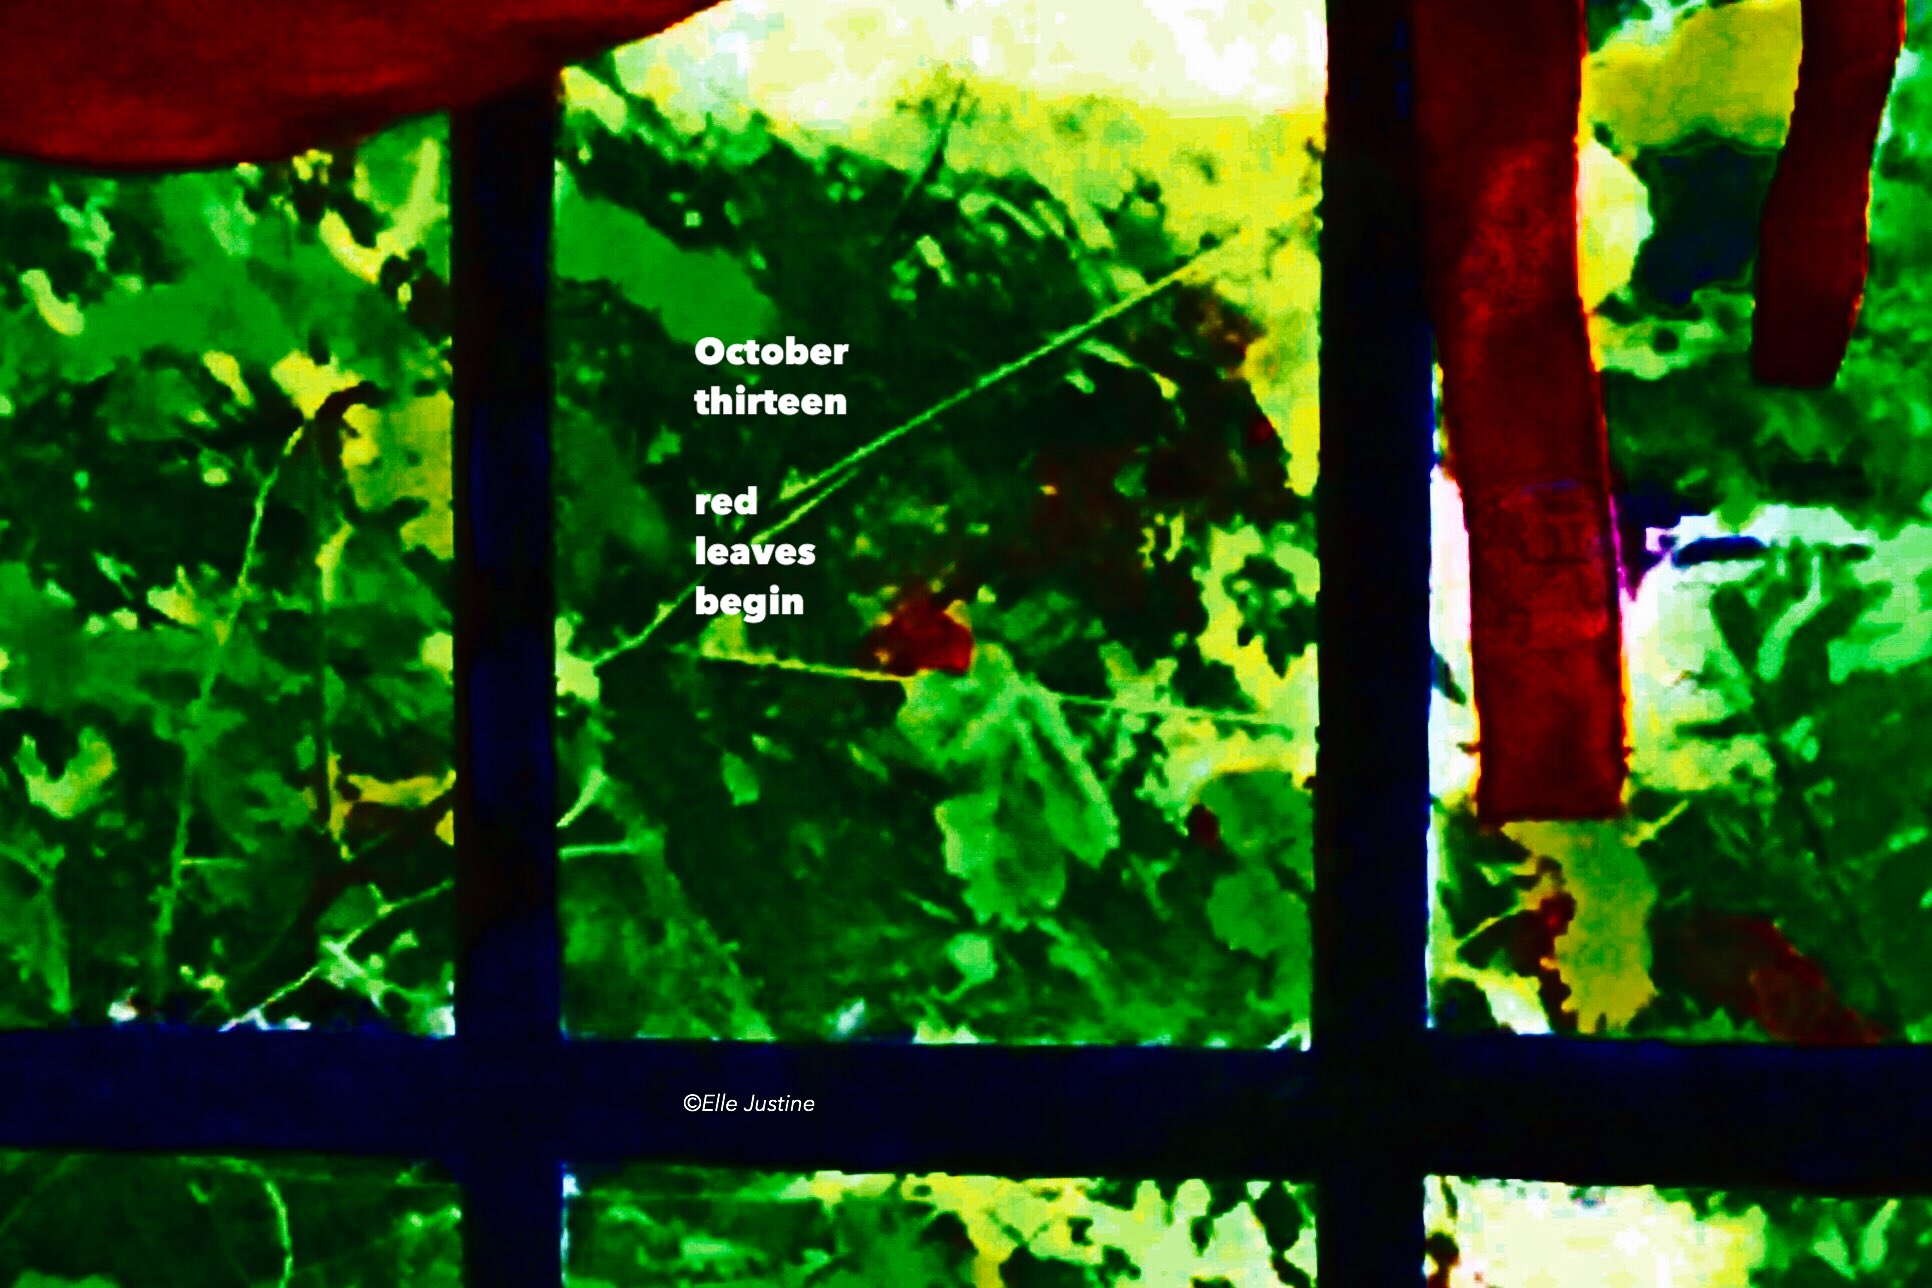 October thirteen  red leaves begin....                 #micropoetry #mpy https://t.co/5O82Fwdjmg